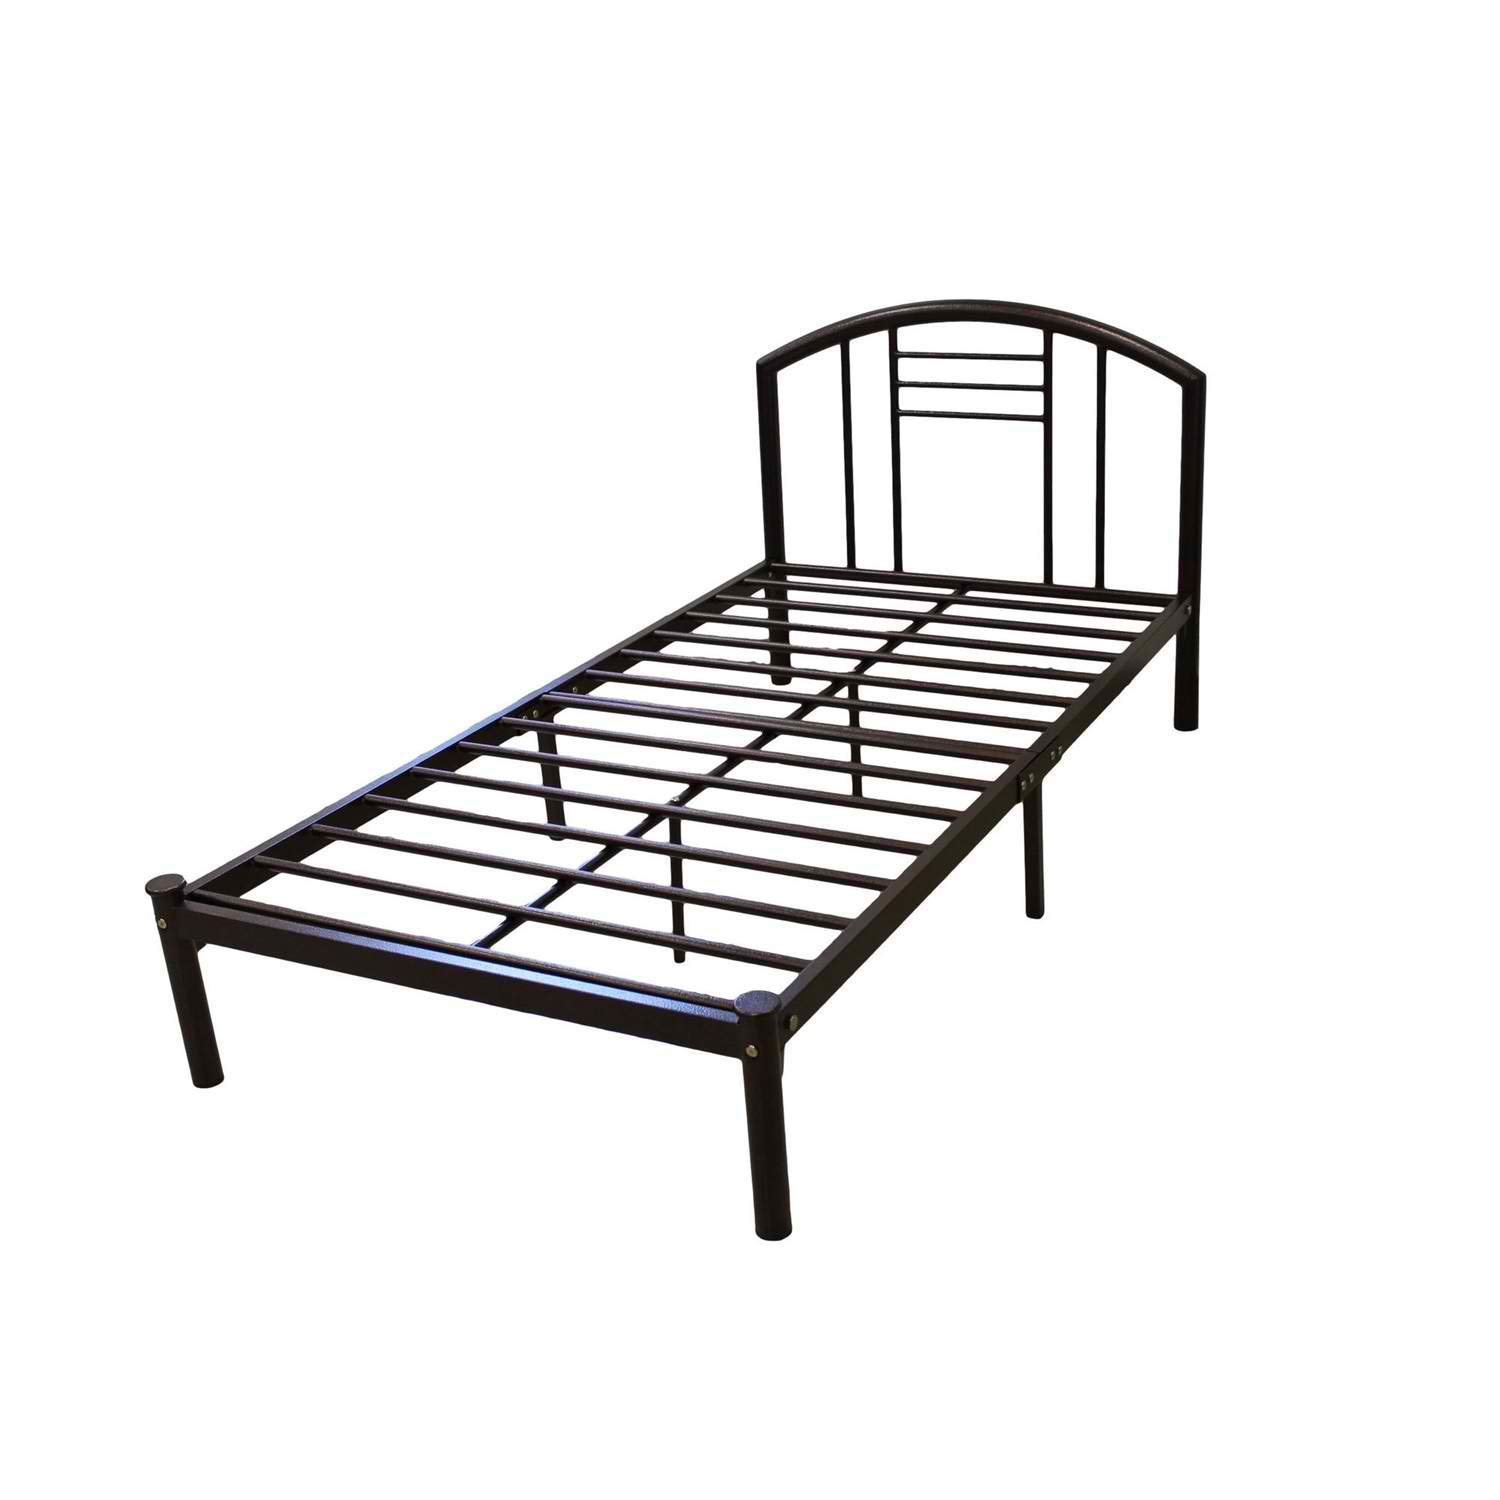 BeUniqueToday Twin Size Platform Bed Frame with Headboard in Bronze Finish, Twin Size Platform Bed Frame with Headboard Has A Contemporary Style and A Silver Finish, A Great Addition to Your Home